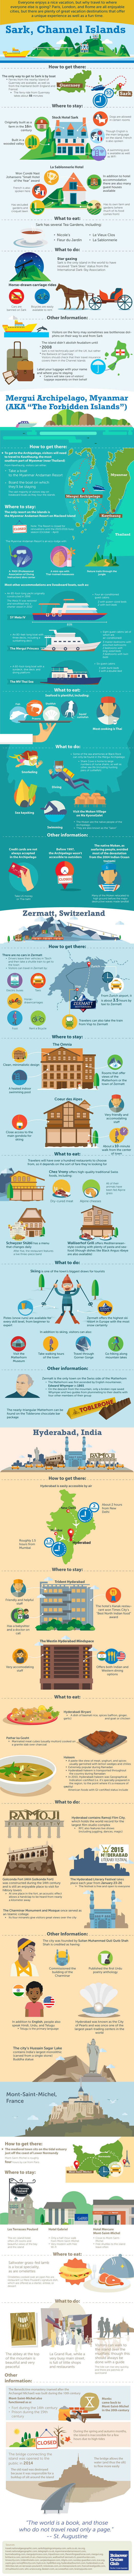 Infographic-best-destinations-you-have-never-heard-of-2